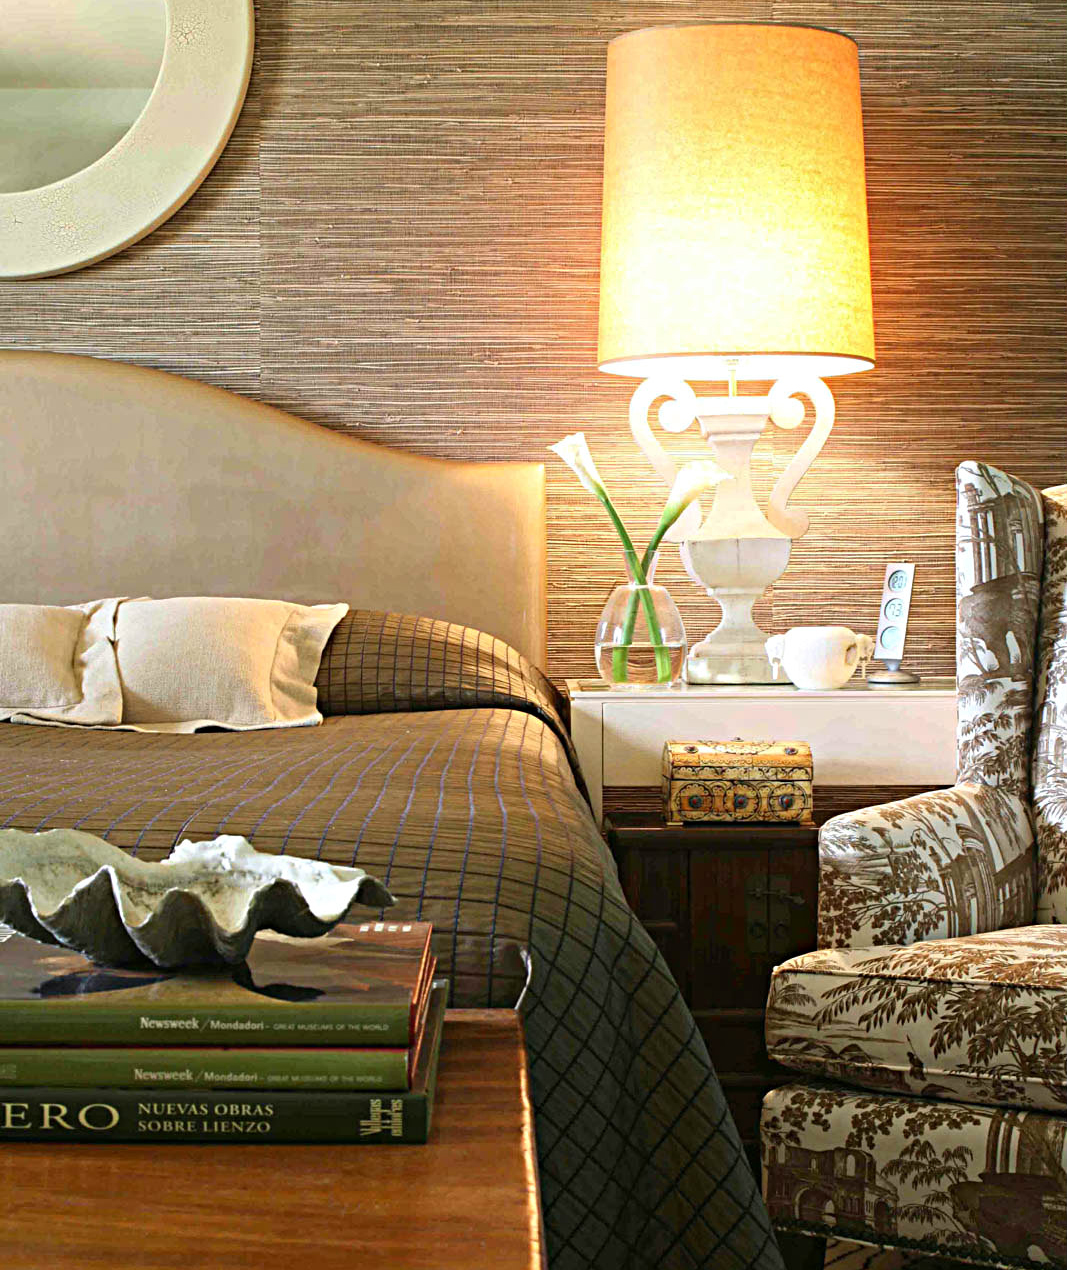 Bedroom with warm tones and browns